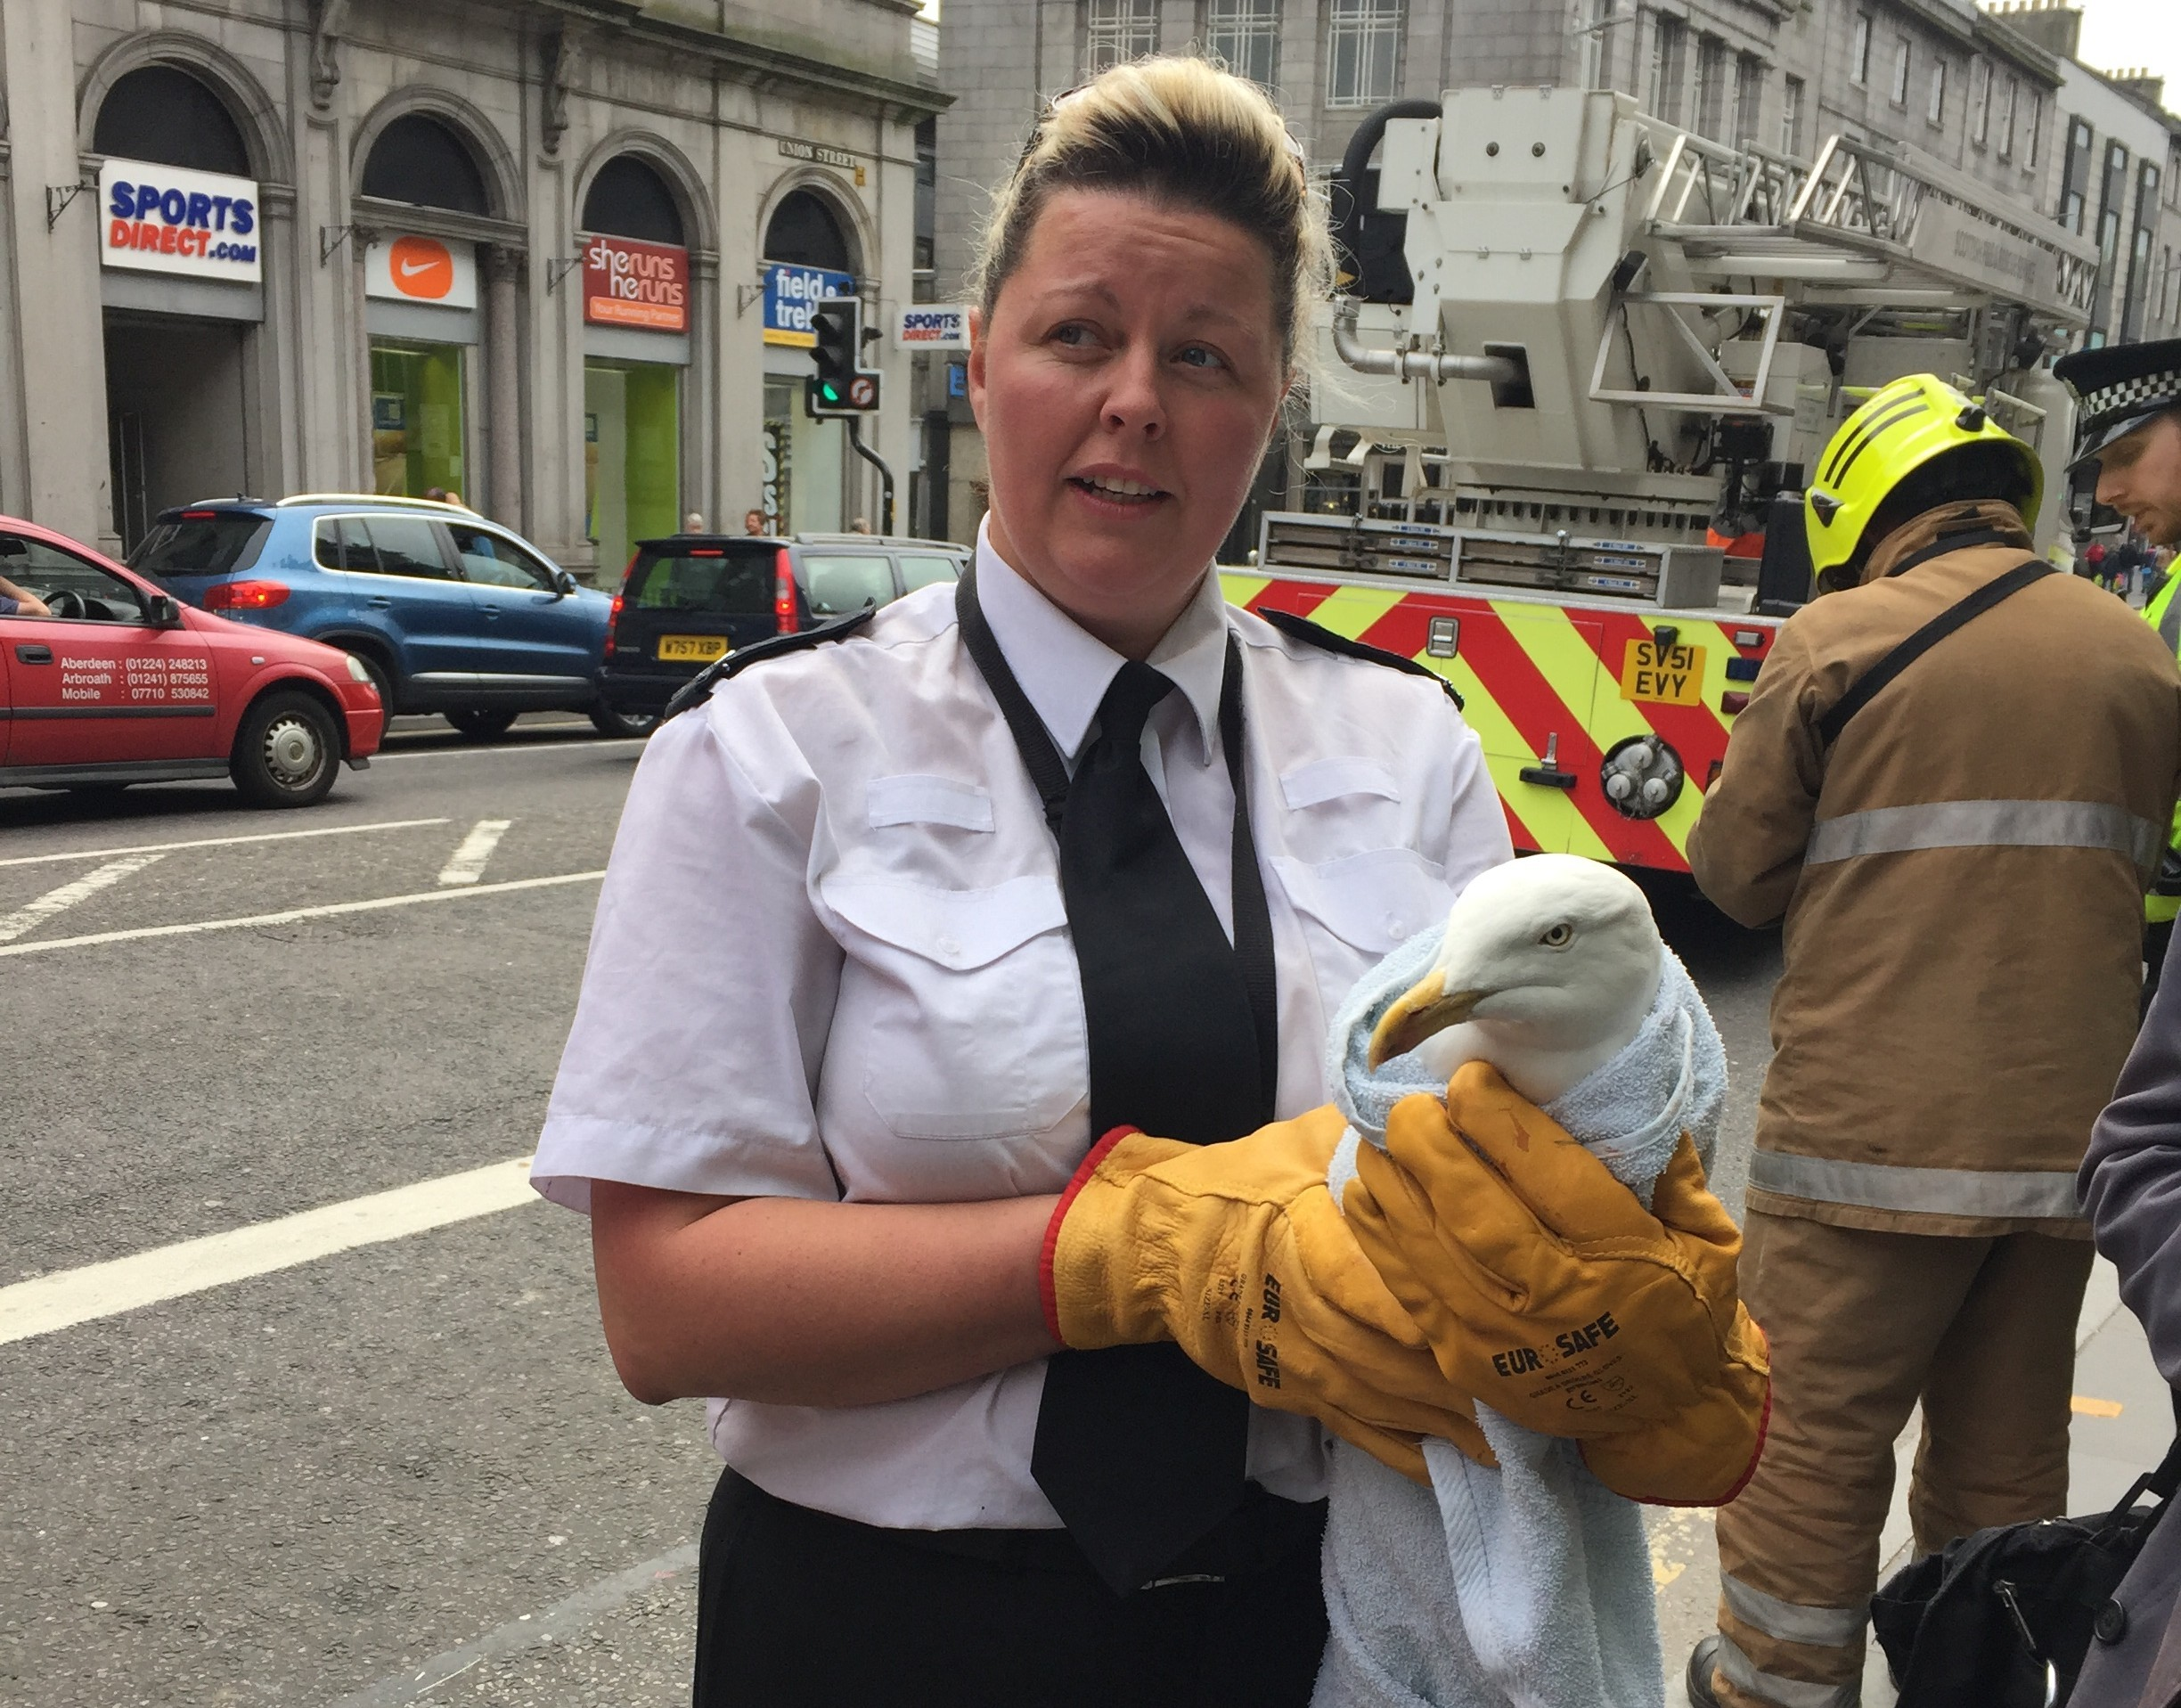 The gull was rescued from the building on Union Street